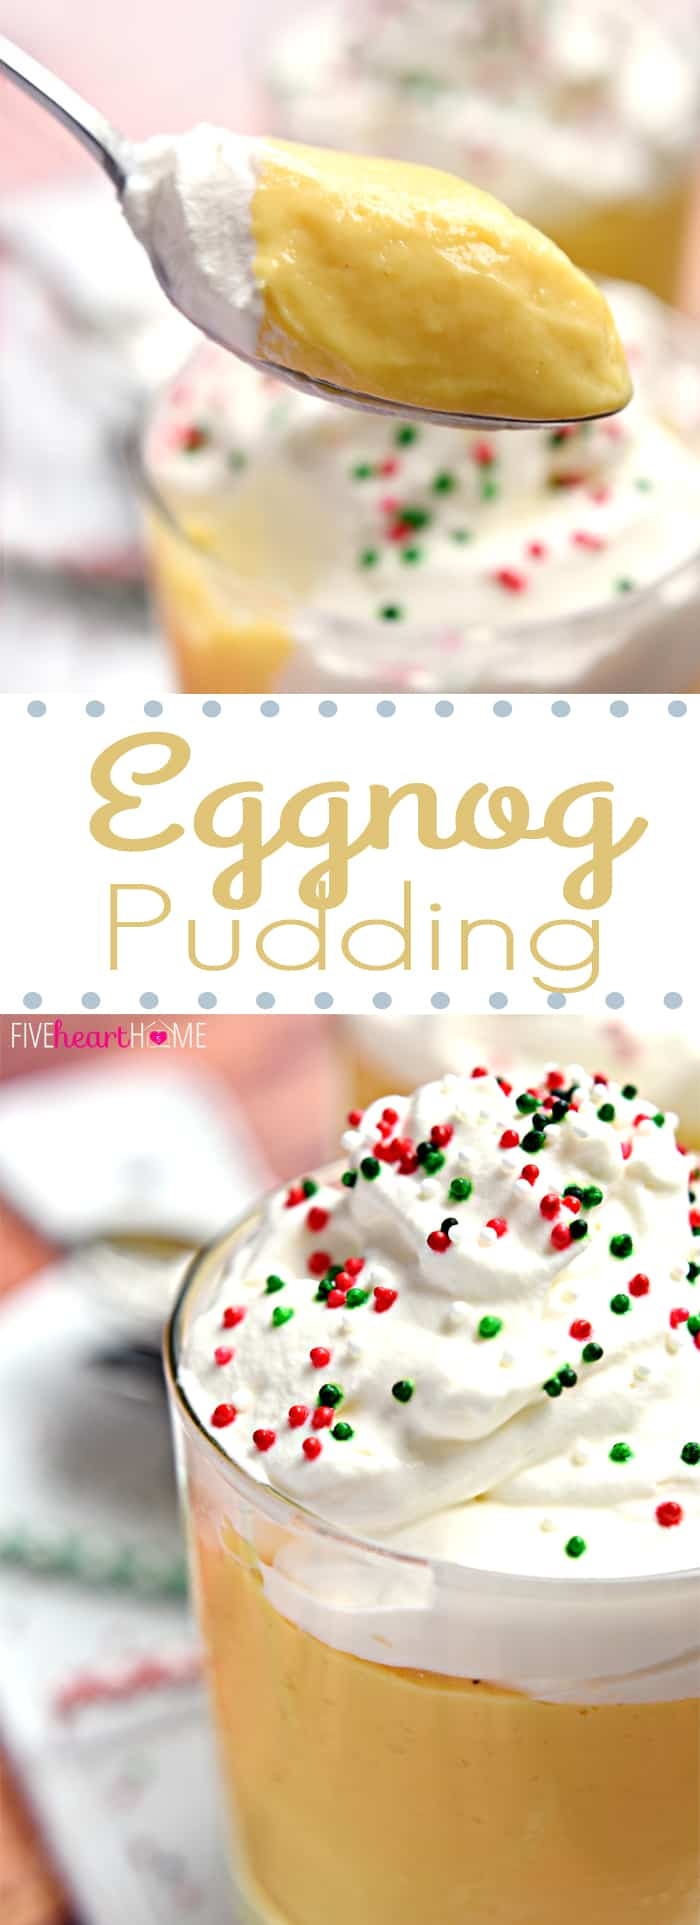 Eggnog Pudding with Whipped Cream Collage with Text Overlay